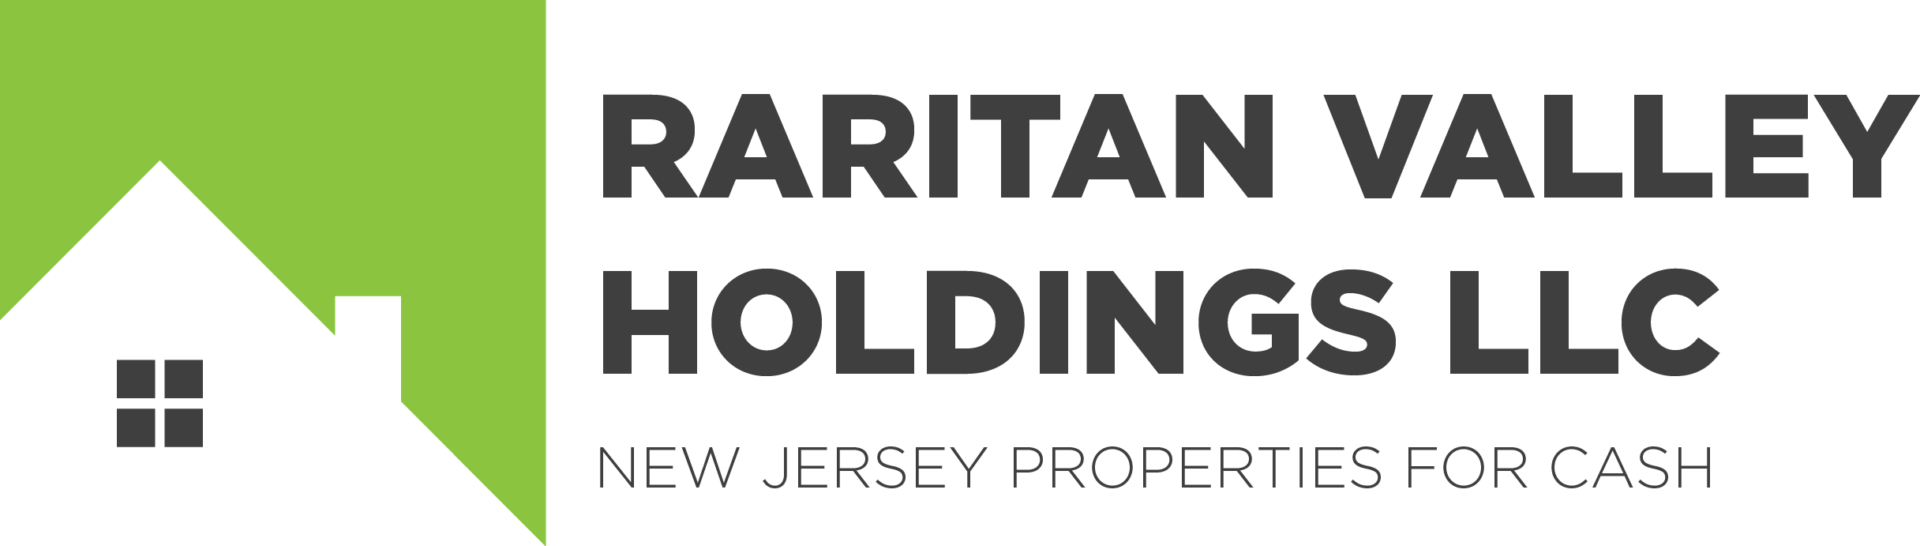 Raritan Valley Holdings LLC logo